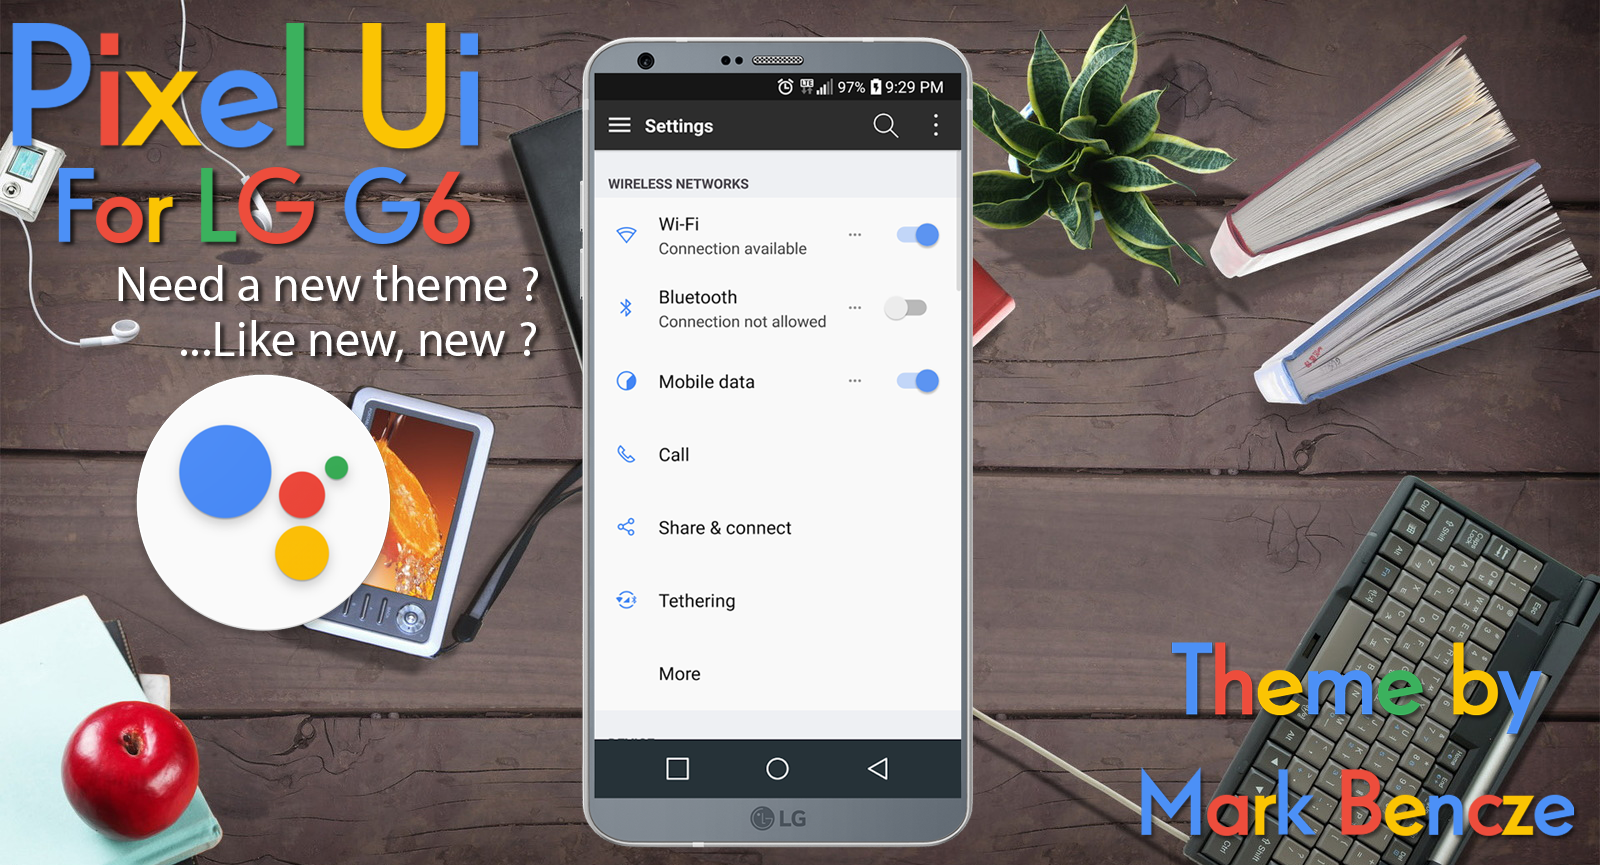 Gmail themes not available settings